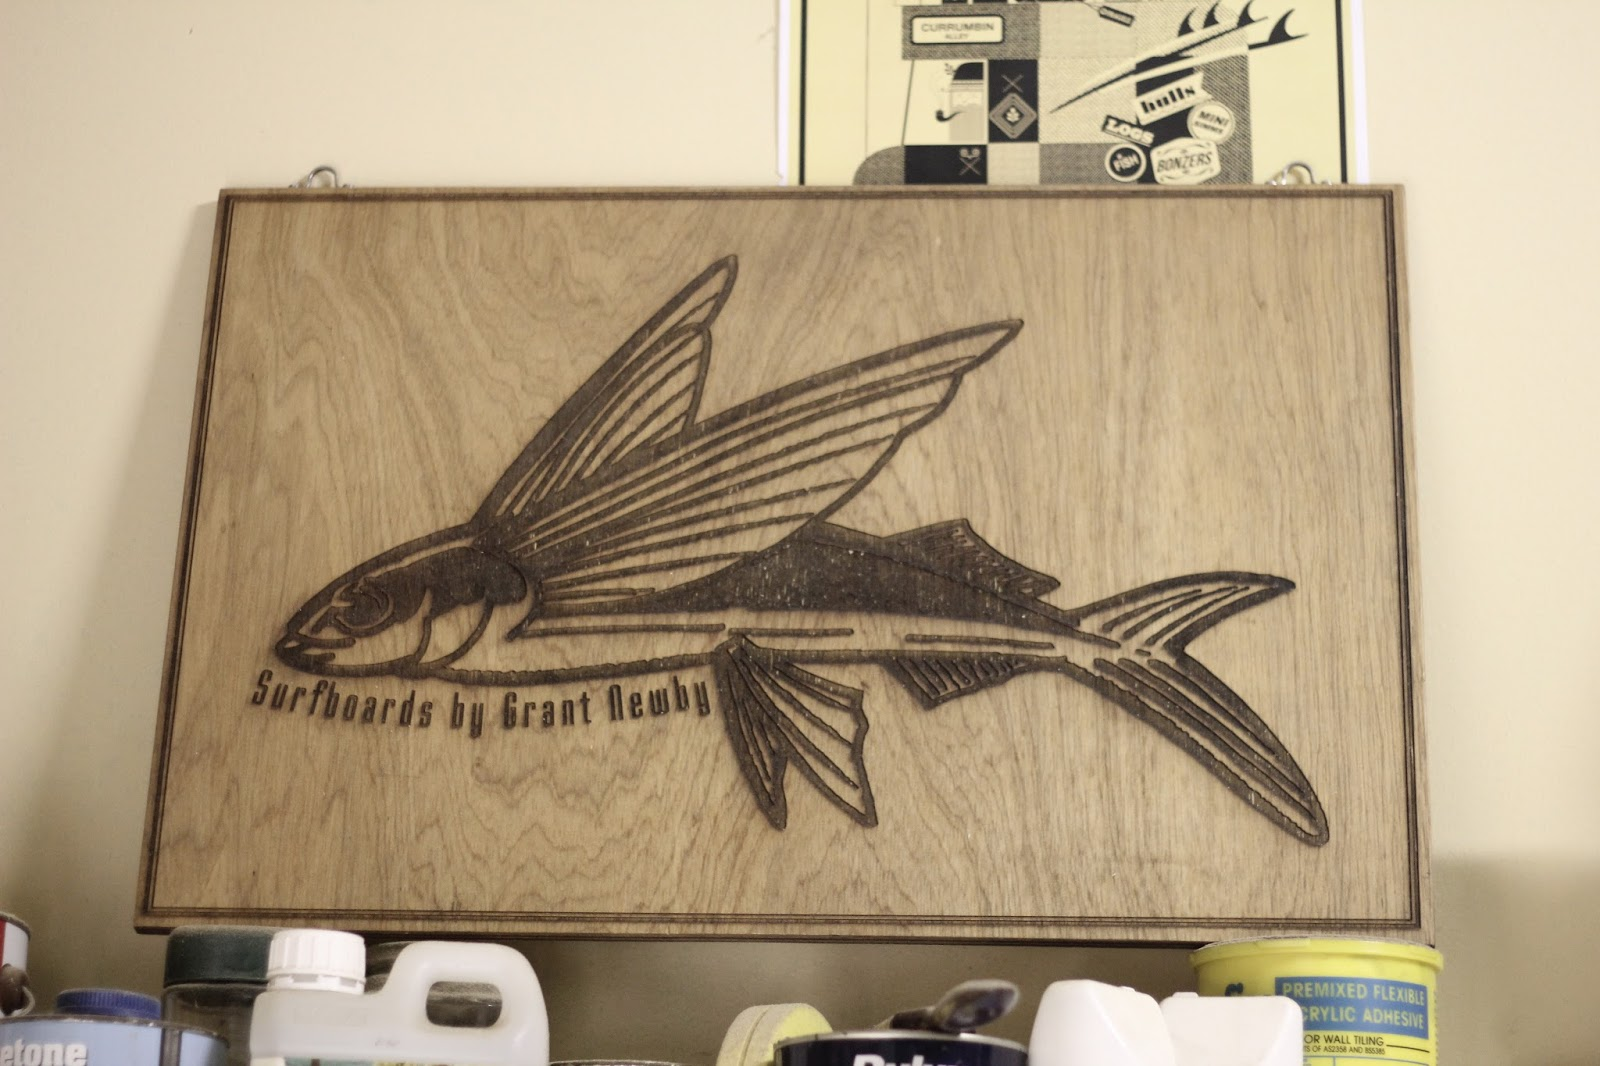 20-03-2016-australia-siebert-surfboards-11